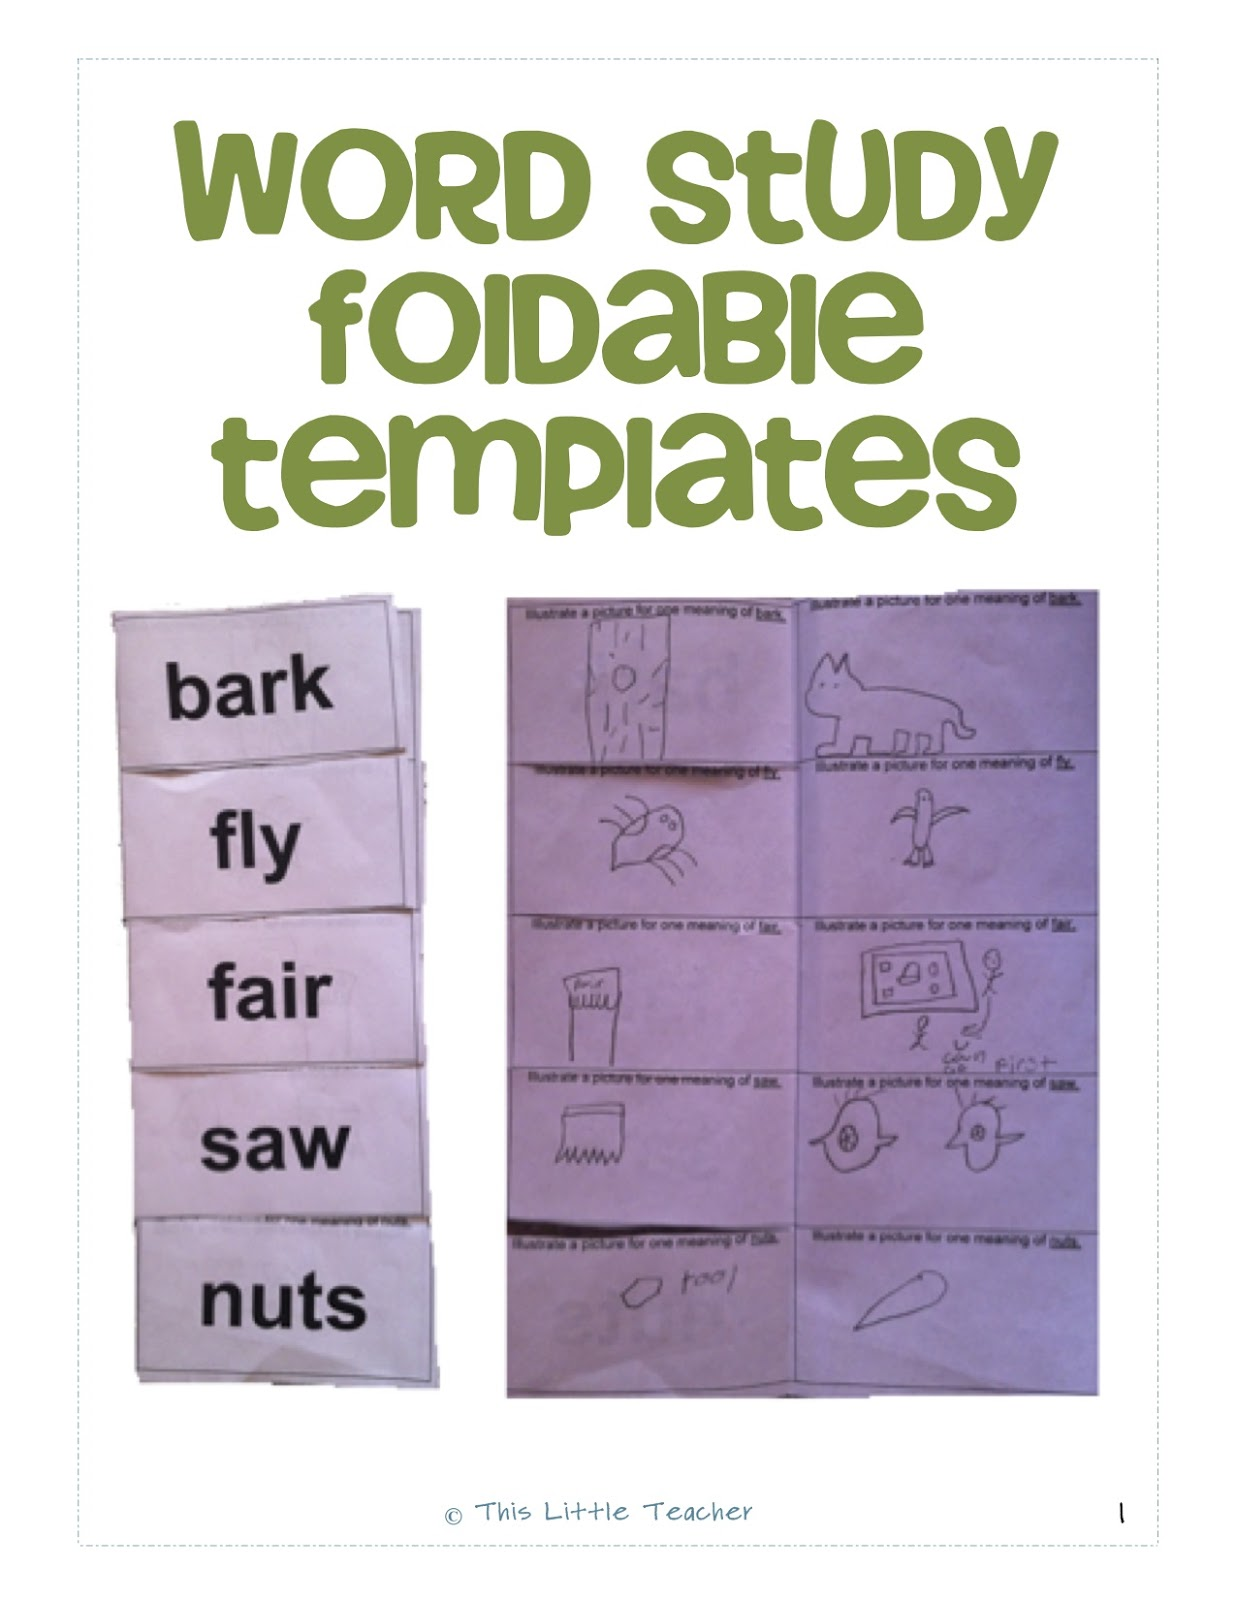 This Little Teacher Word Study Foldable Templates